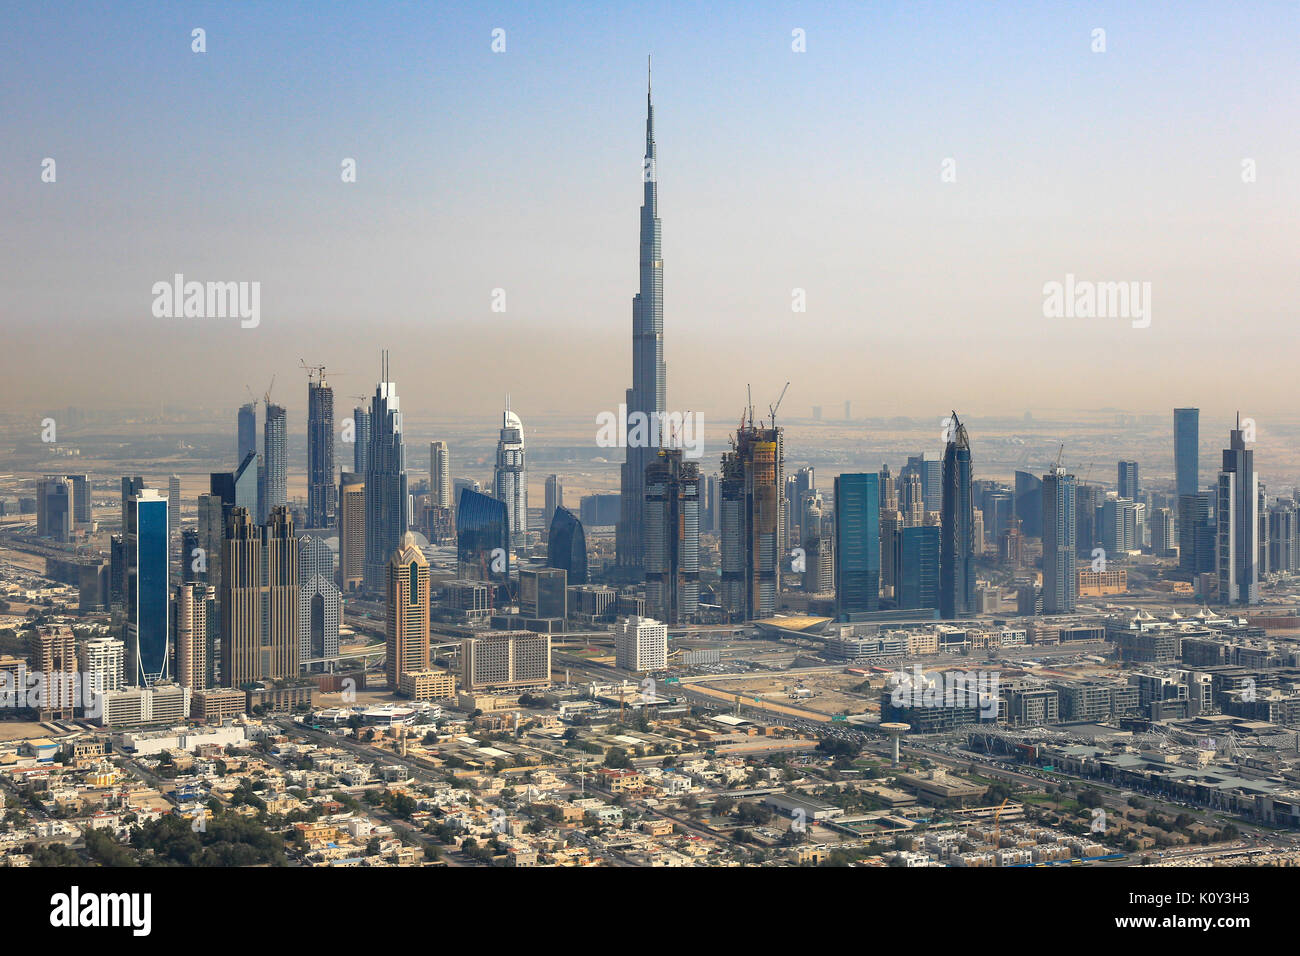 Dubai skyline Burj Khalifa Downtown aerial view photography UAE - Stock Image